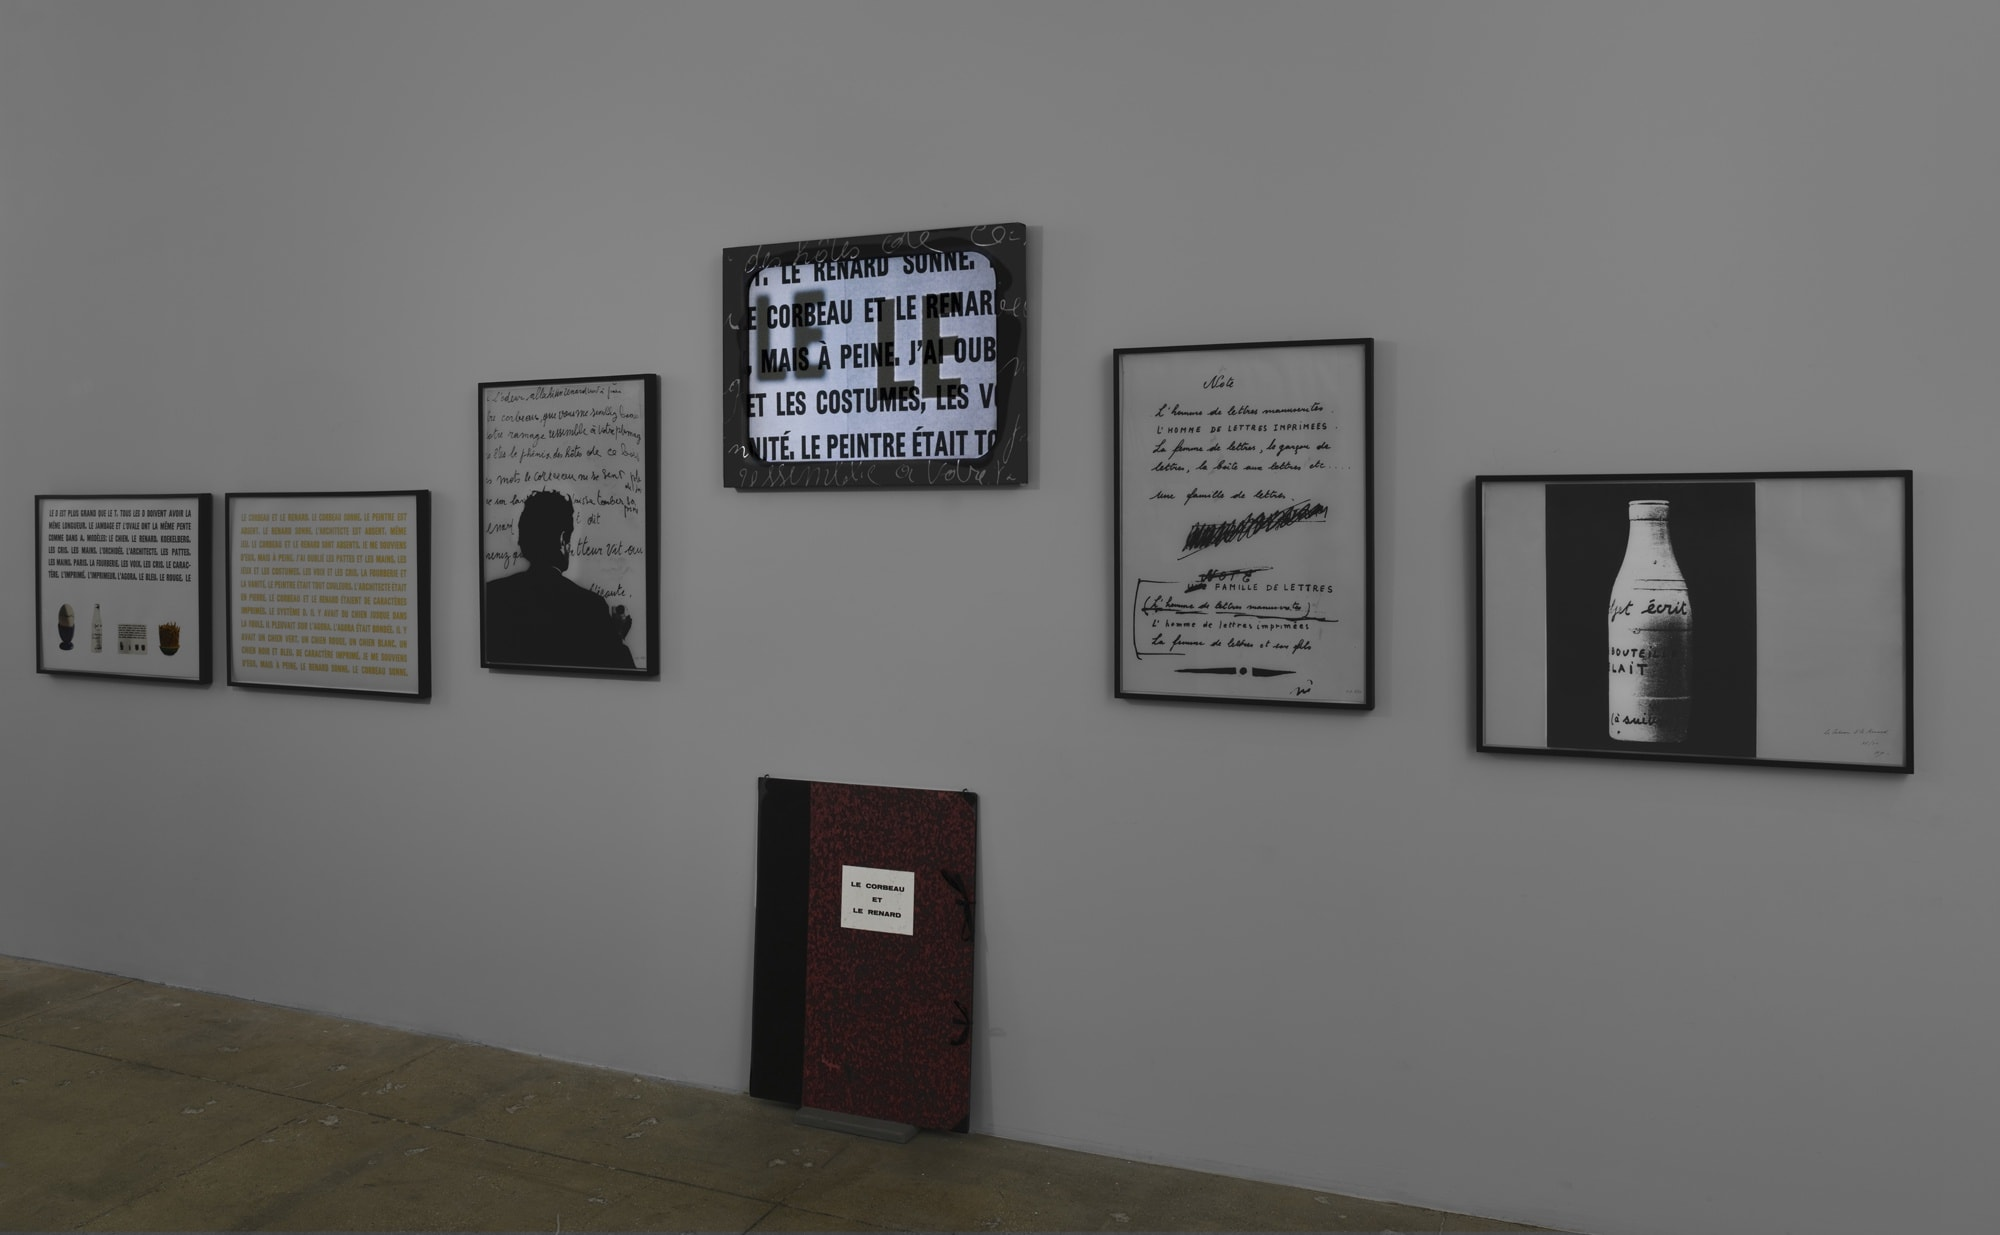 On a white wall, various framed works of drawing and text hang, including a projection of the words: LE LE.